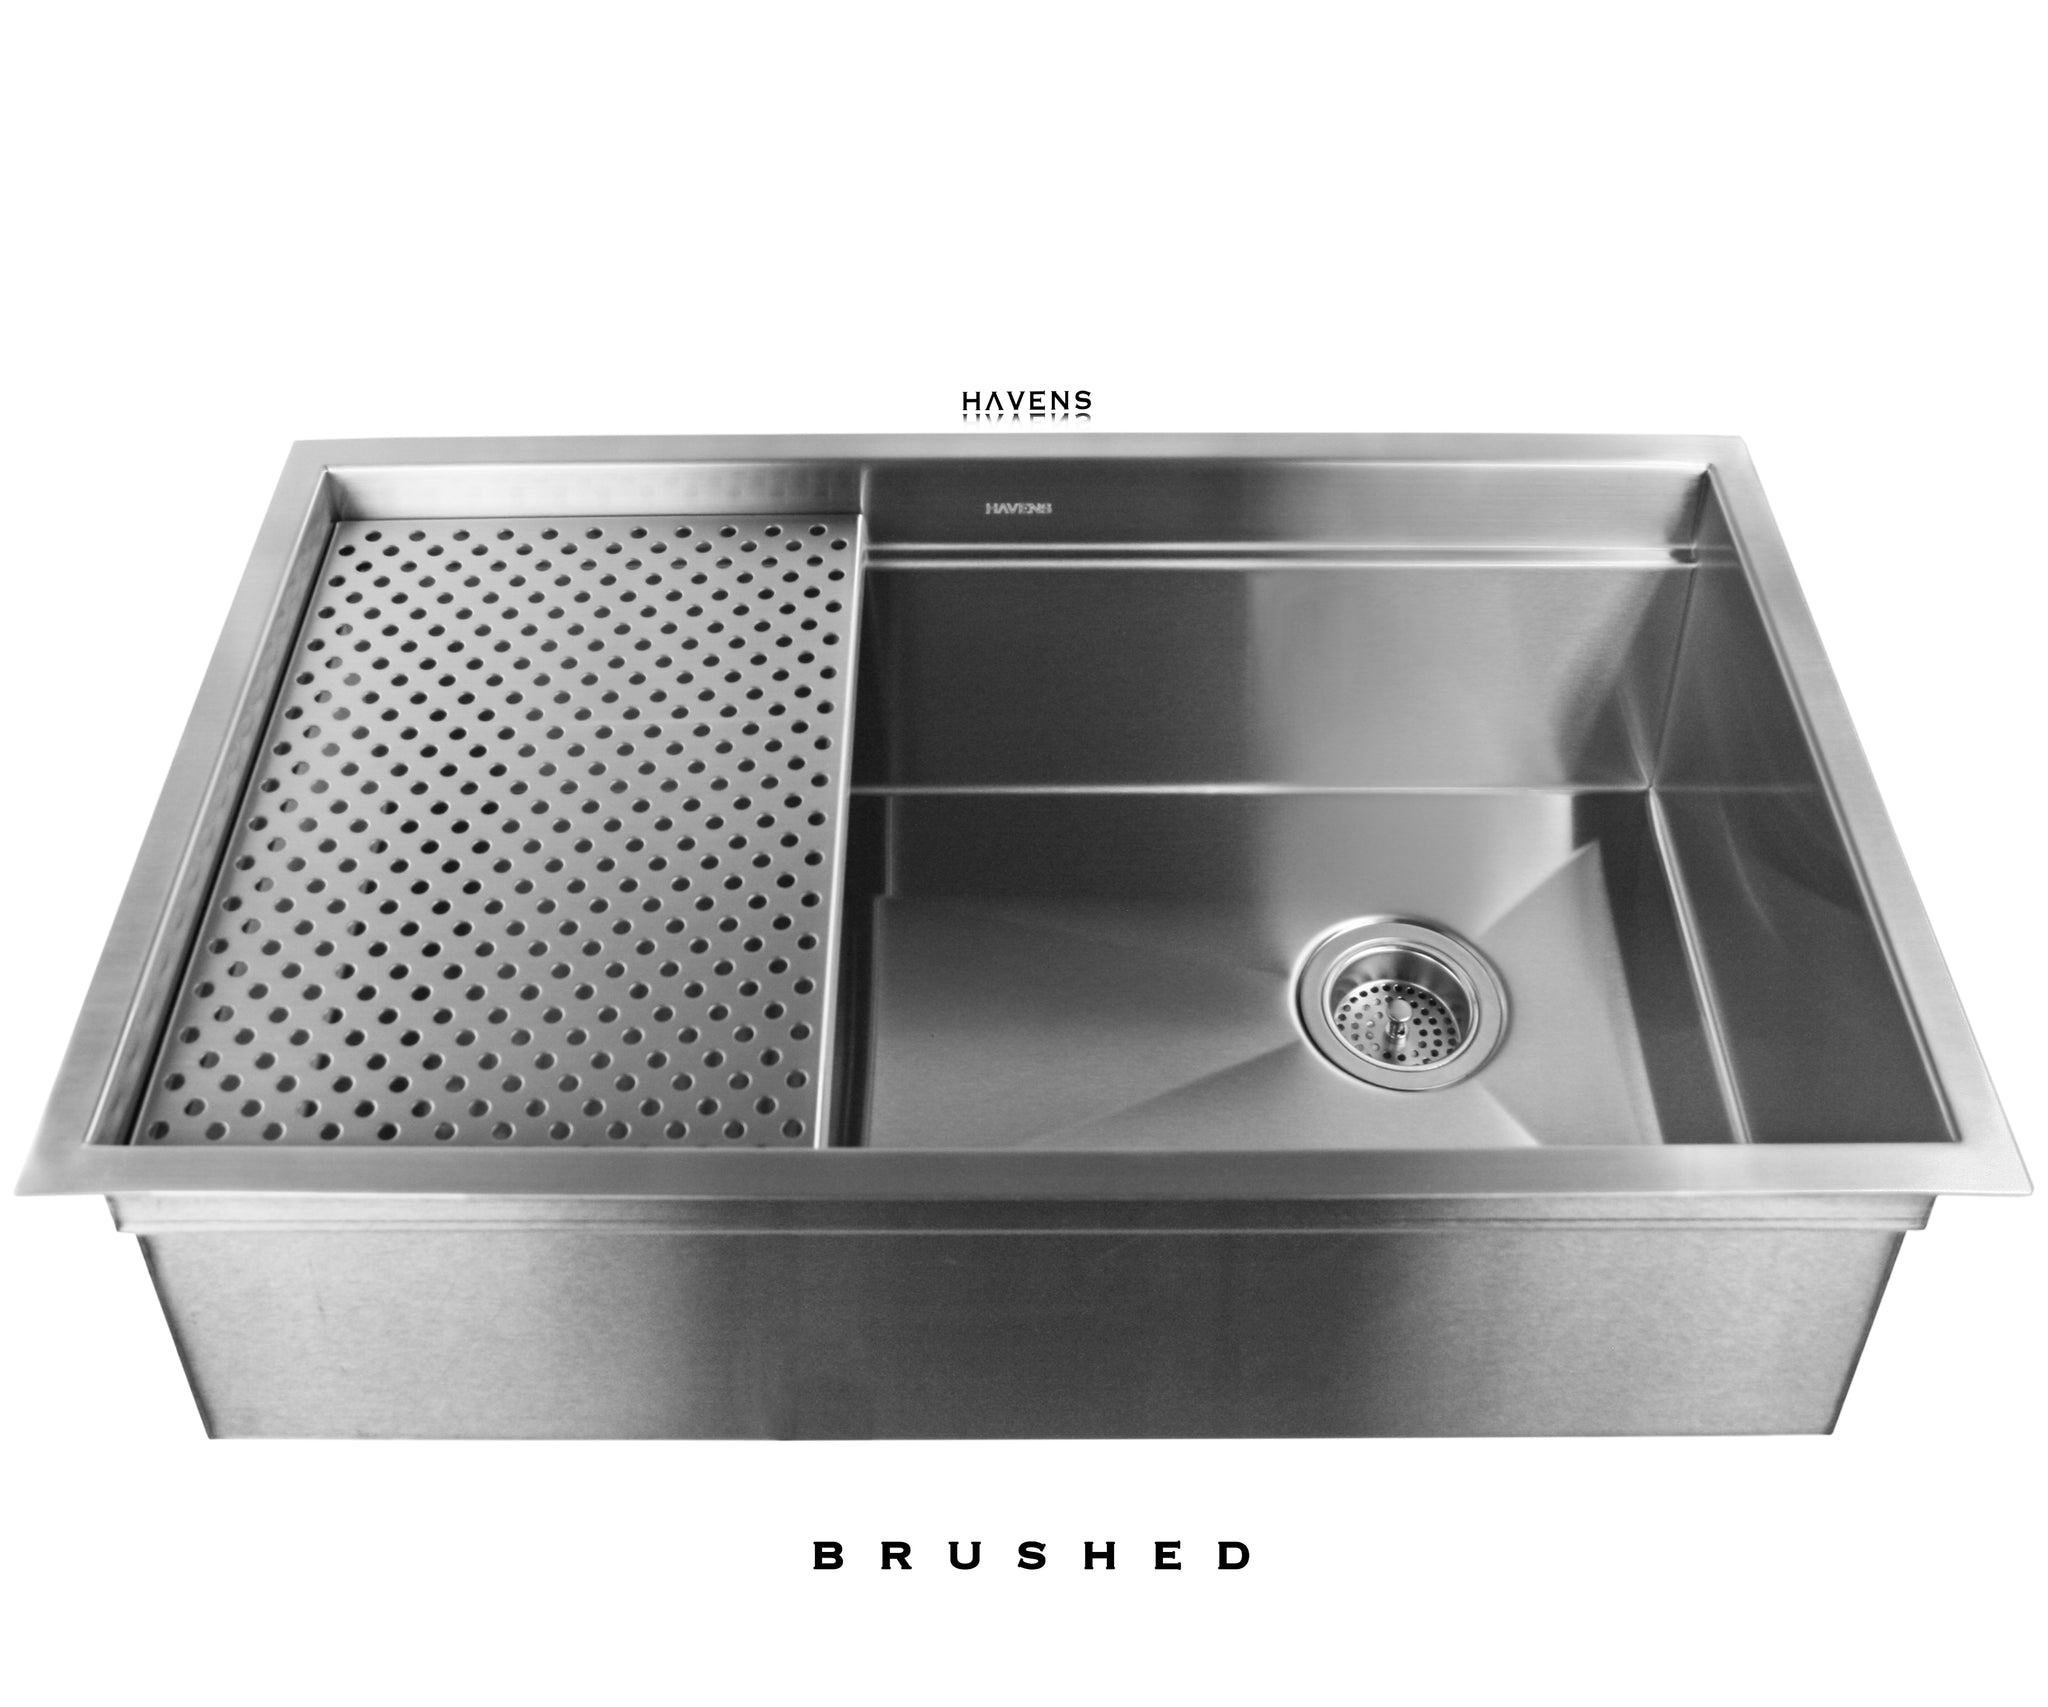 Legacy Undermount Sink - Brushed Stainless